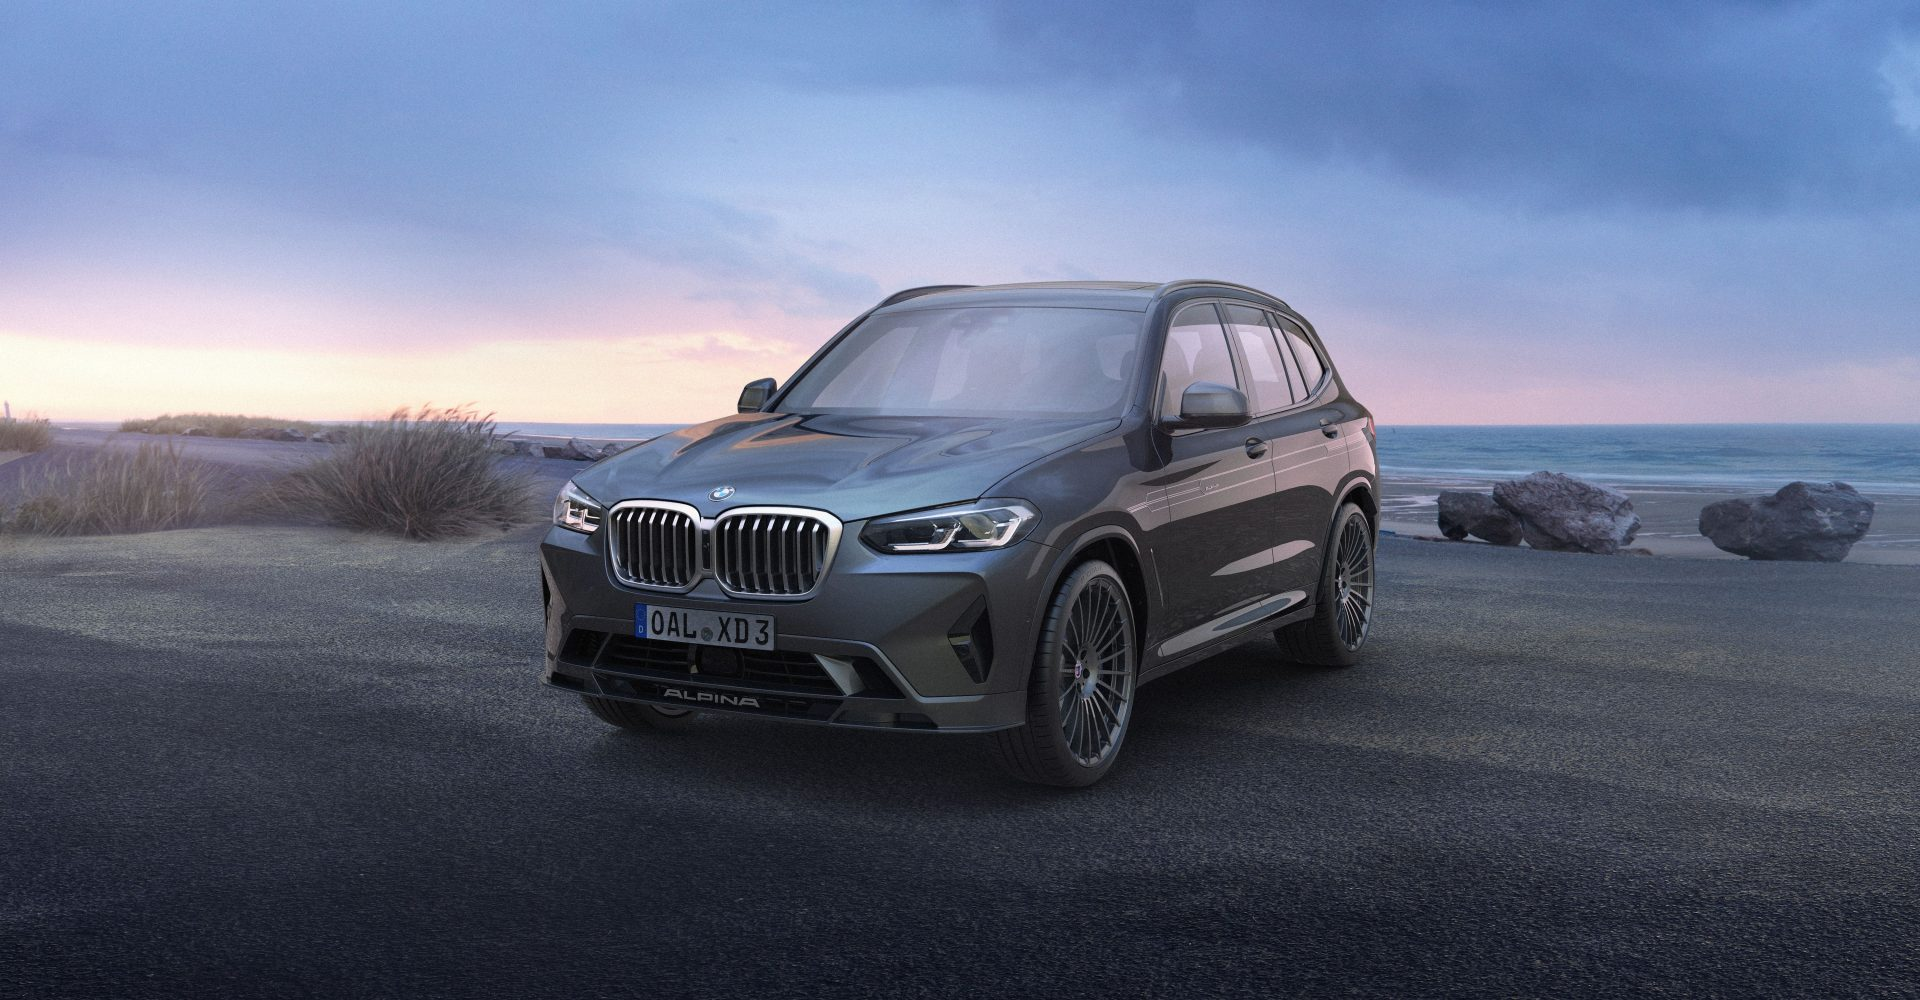 New Alpina XD3 arrives with fresh new look and mild-hybrid tech